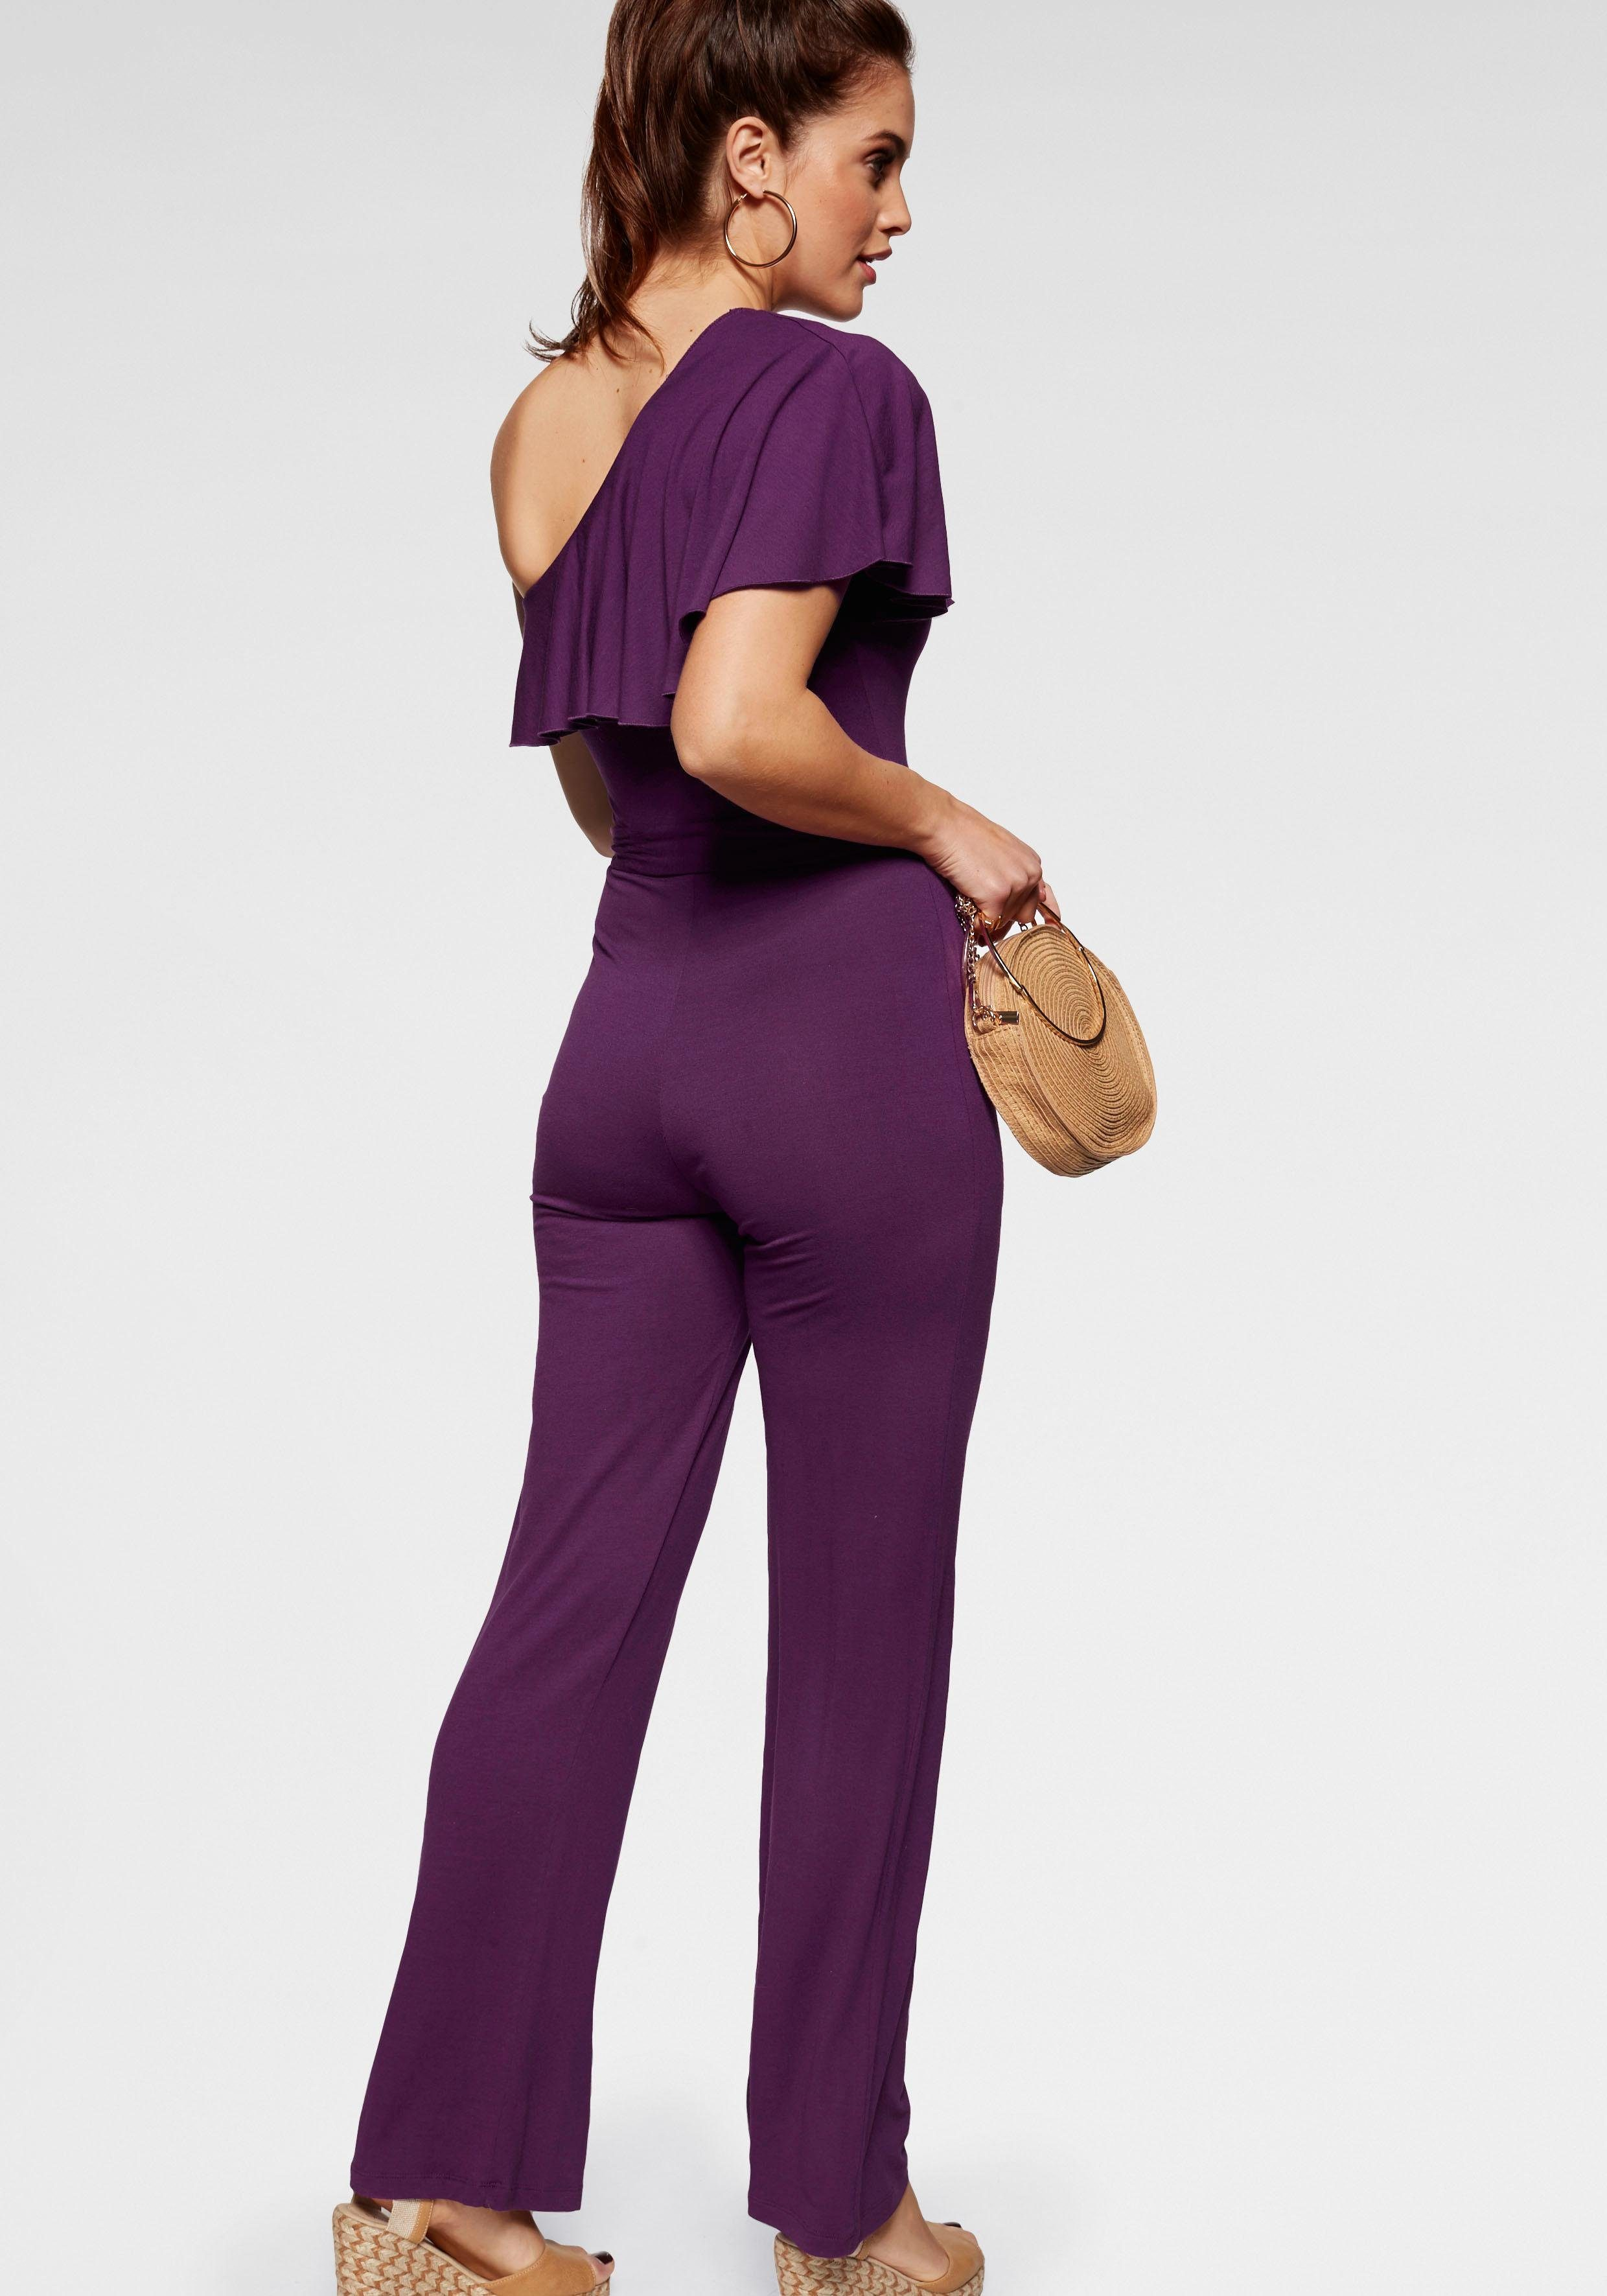 Overall Kaufen Form One Shoulder Melrose In Online EH29DI